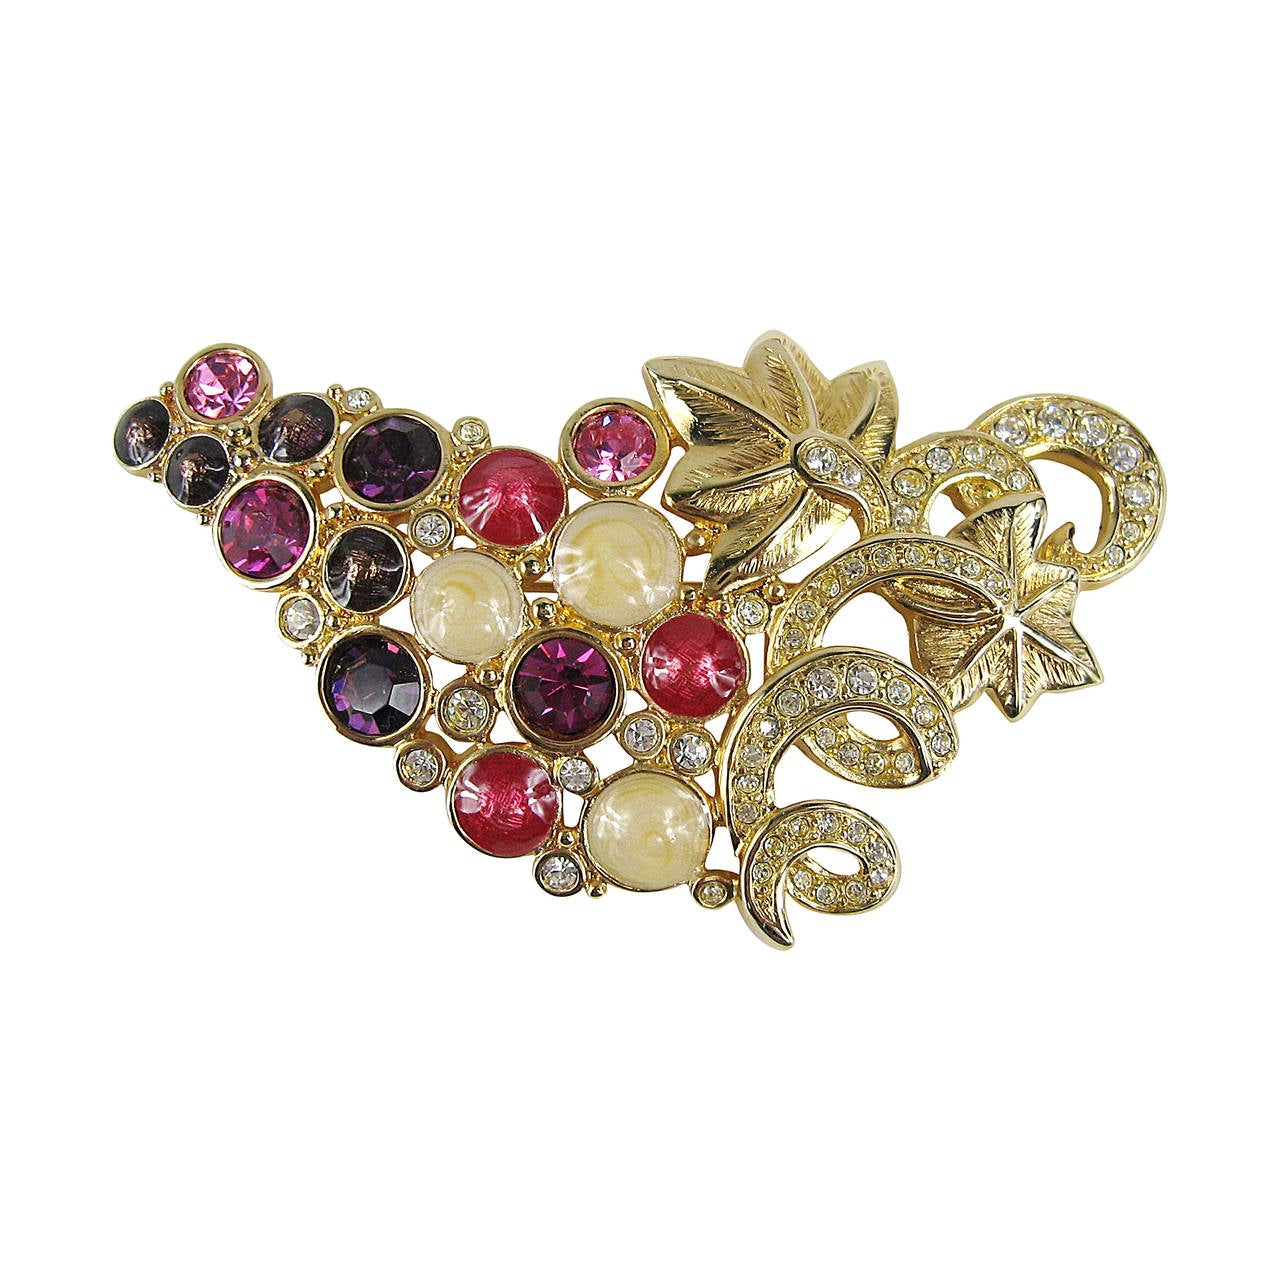 Daniel Swarovski Crystal Grape Brooch For Sale at 1stdibs